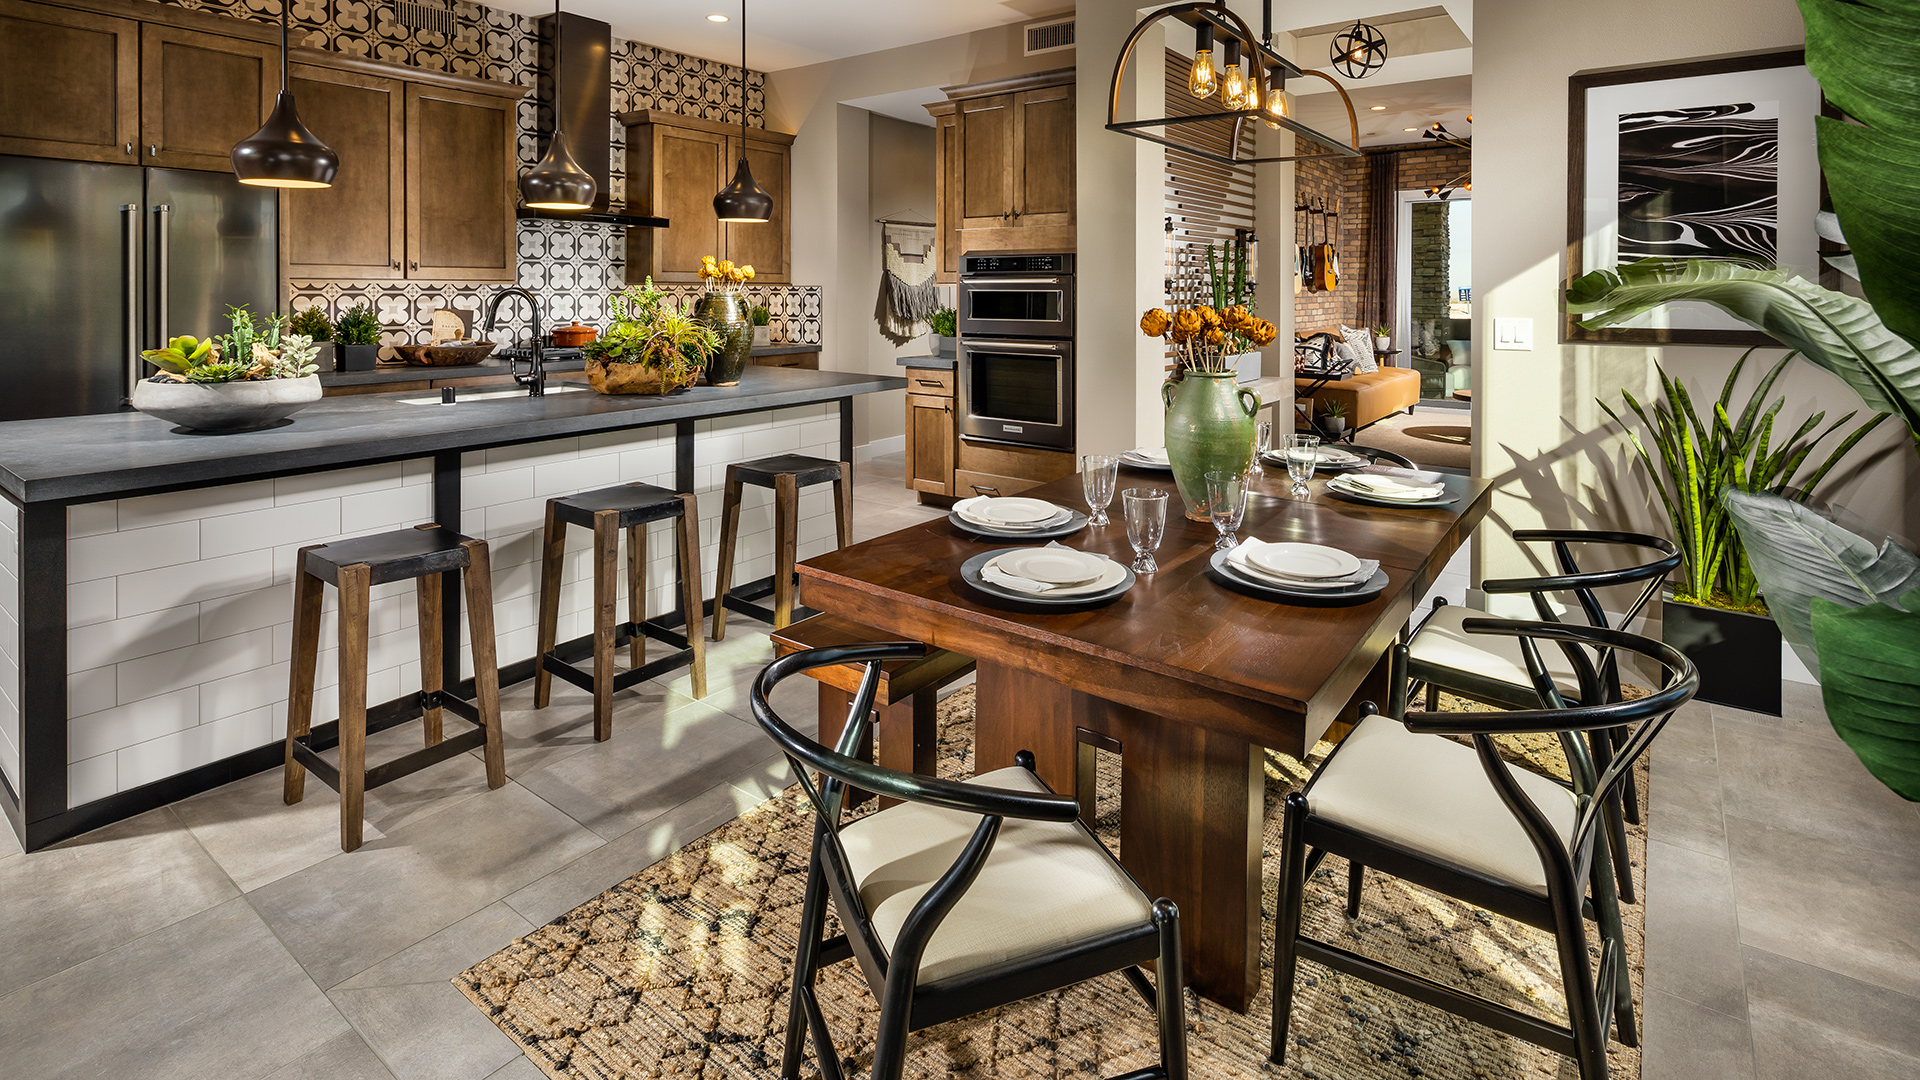 Fairway hills in the ridges quick delivery home oakmont for The oakmont